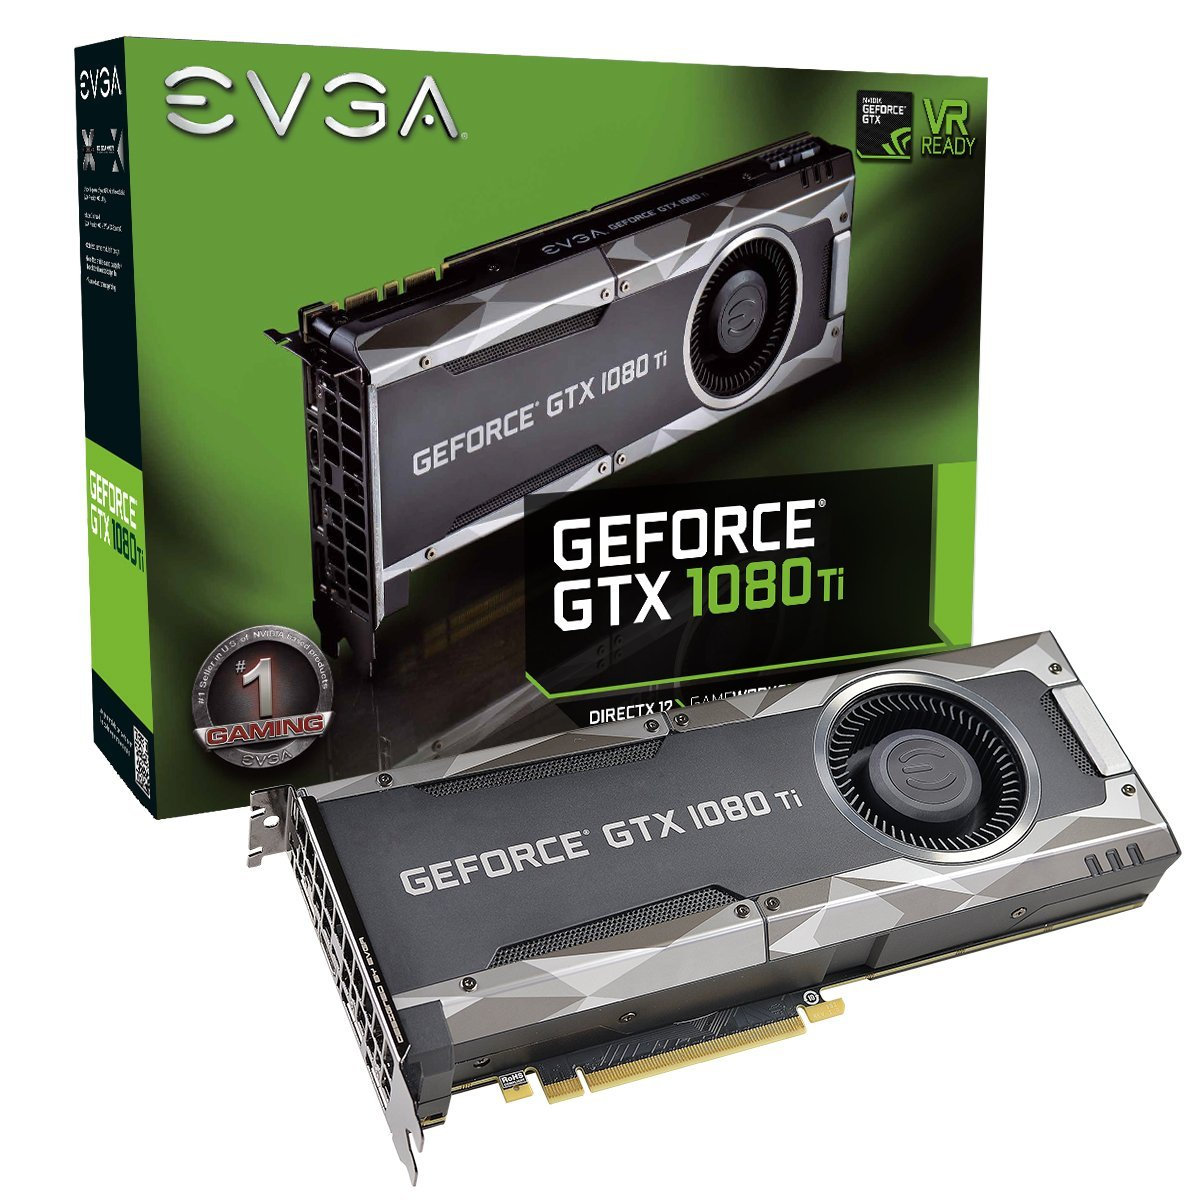 EVGA GTX 1080 Ti Gaming 5390 11Go - Carte graphique EVGA - 0